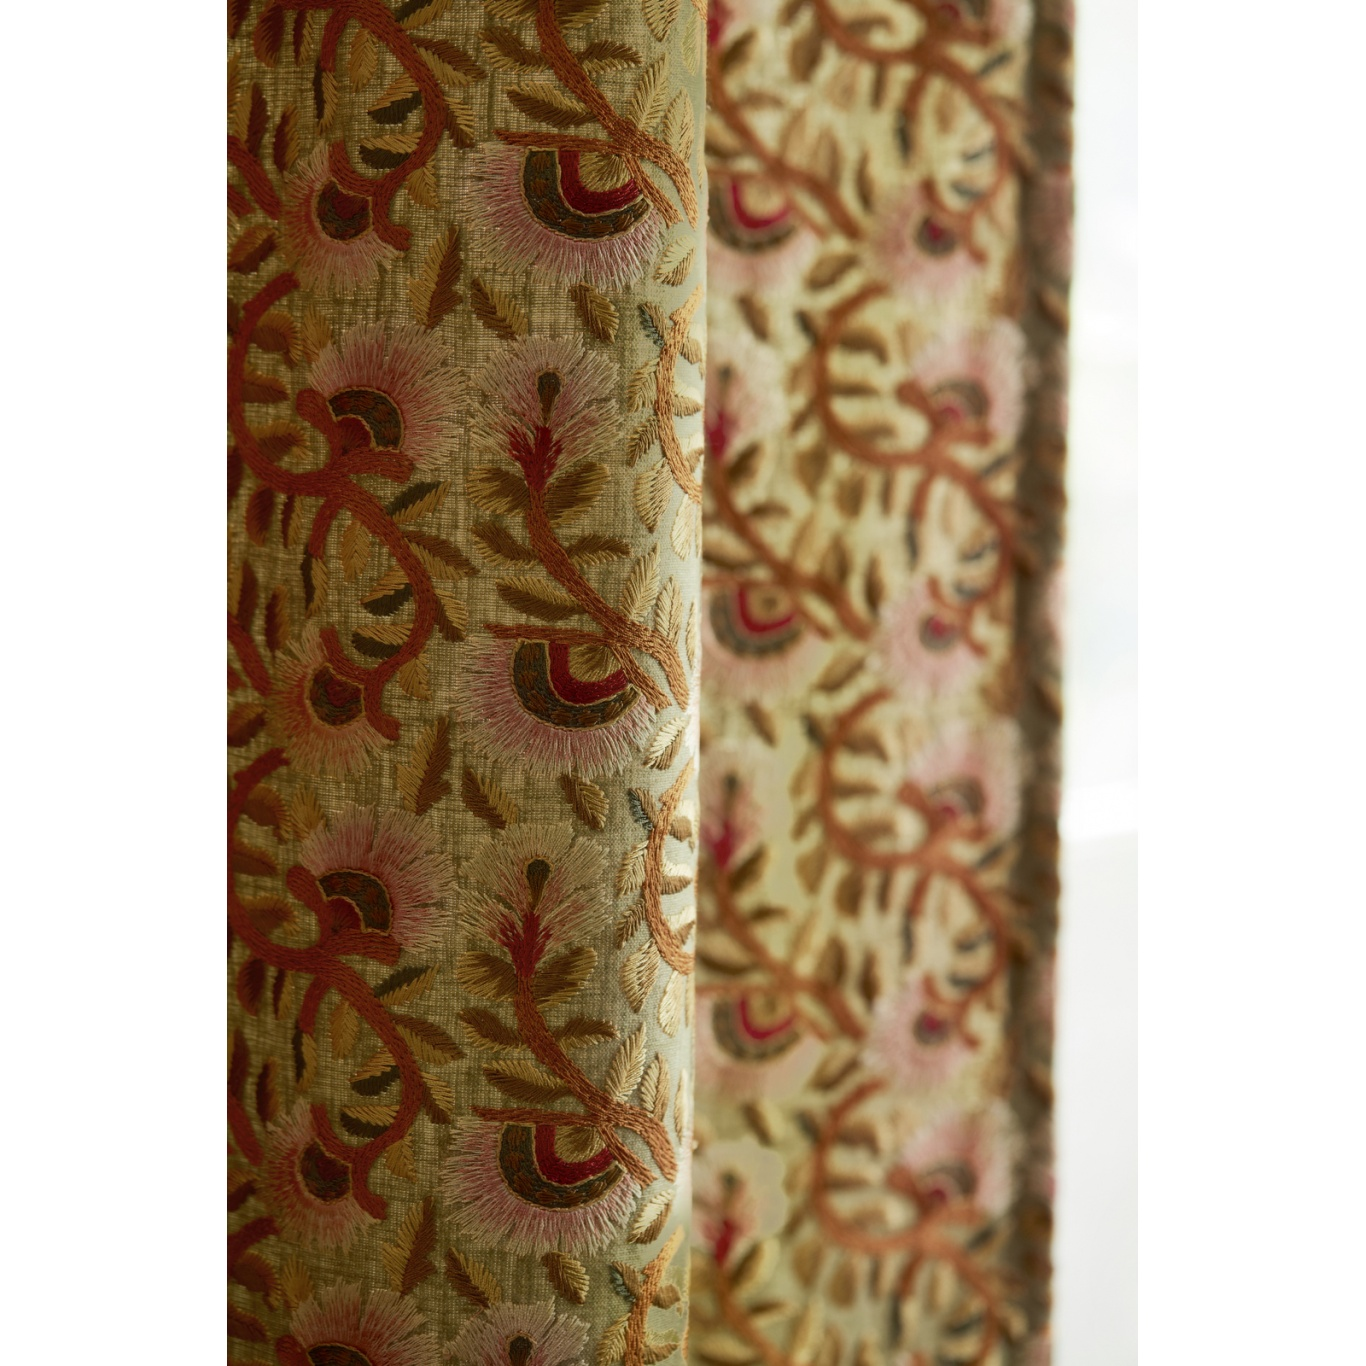 Morris & Co Wardle Embroidery Olive/Brick Fabric 236819